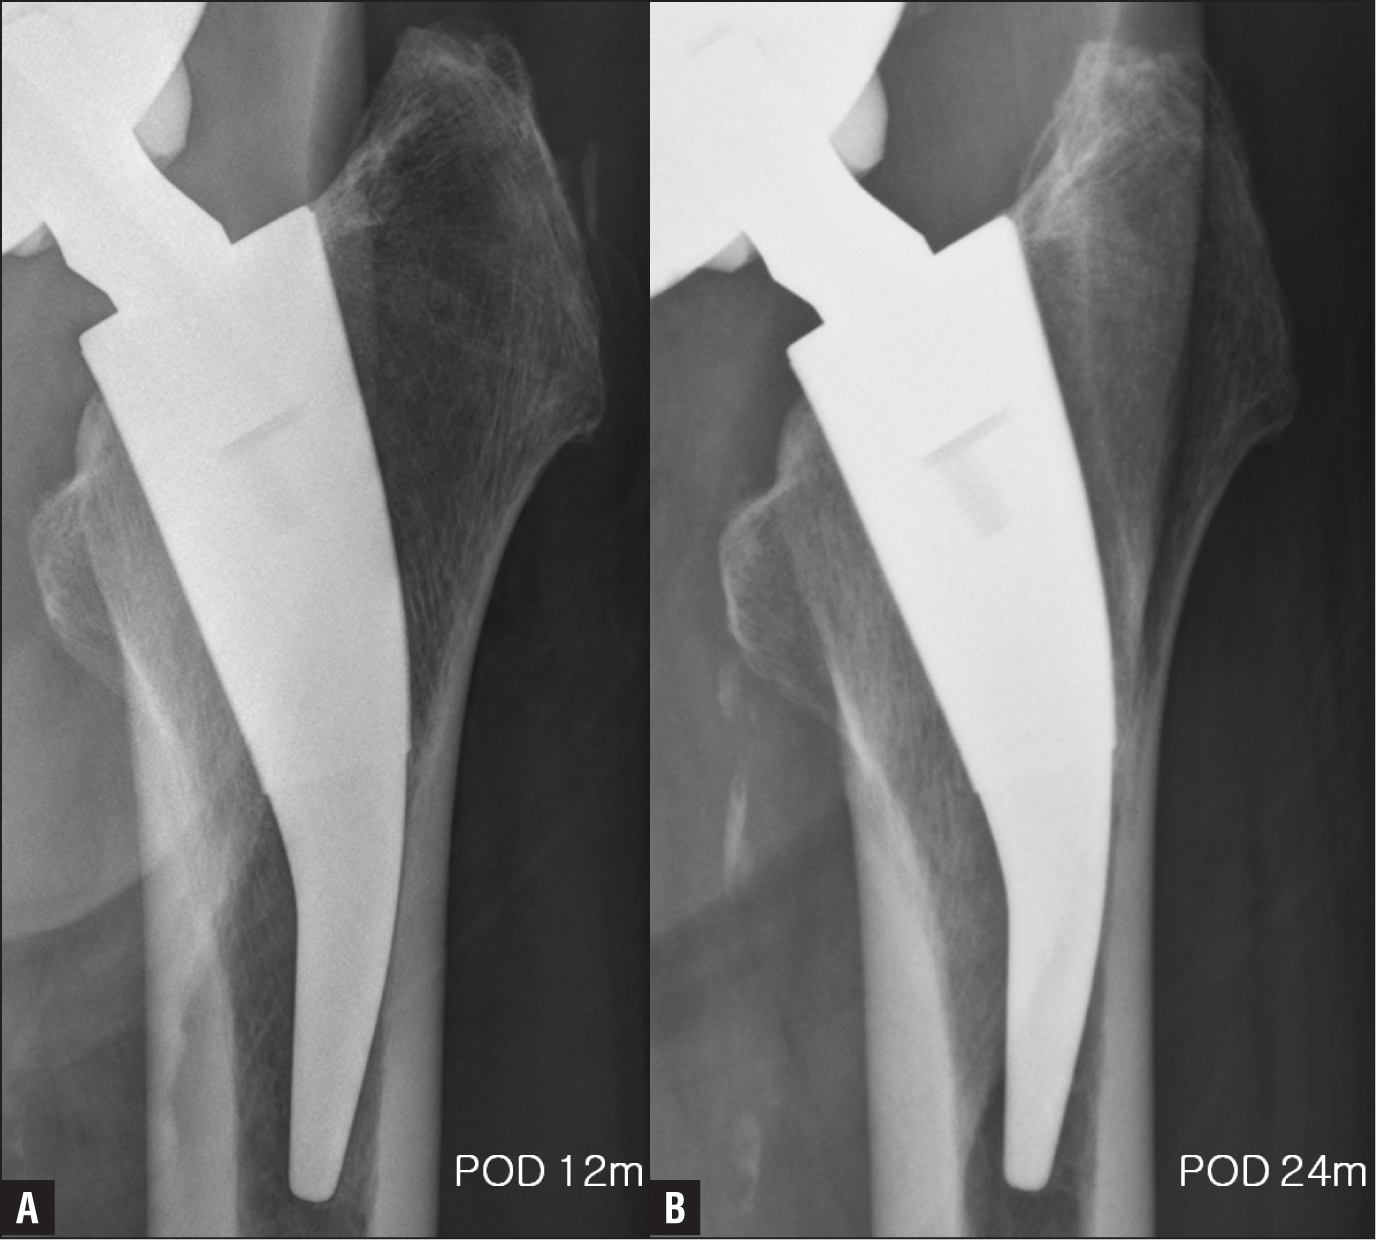 Radiographs of a 75-year-old man showing no reactive radiodense line at 12 months (A) and 24 months (B) postoperatively.